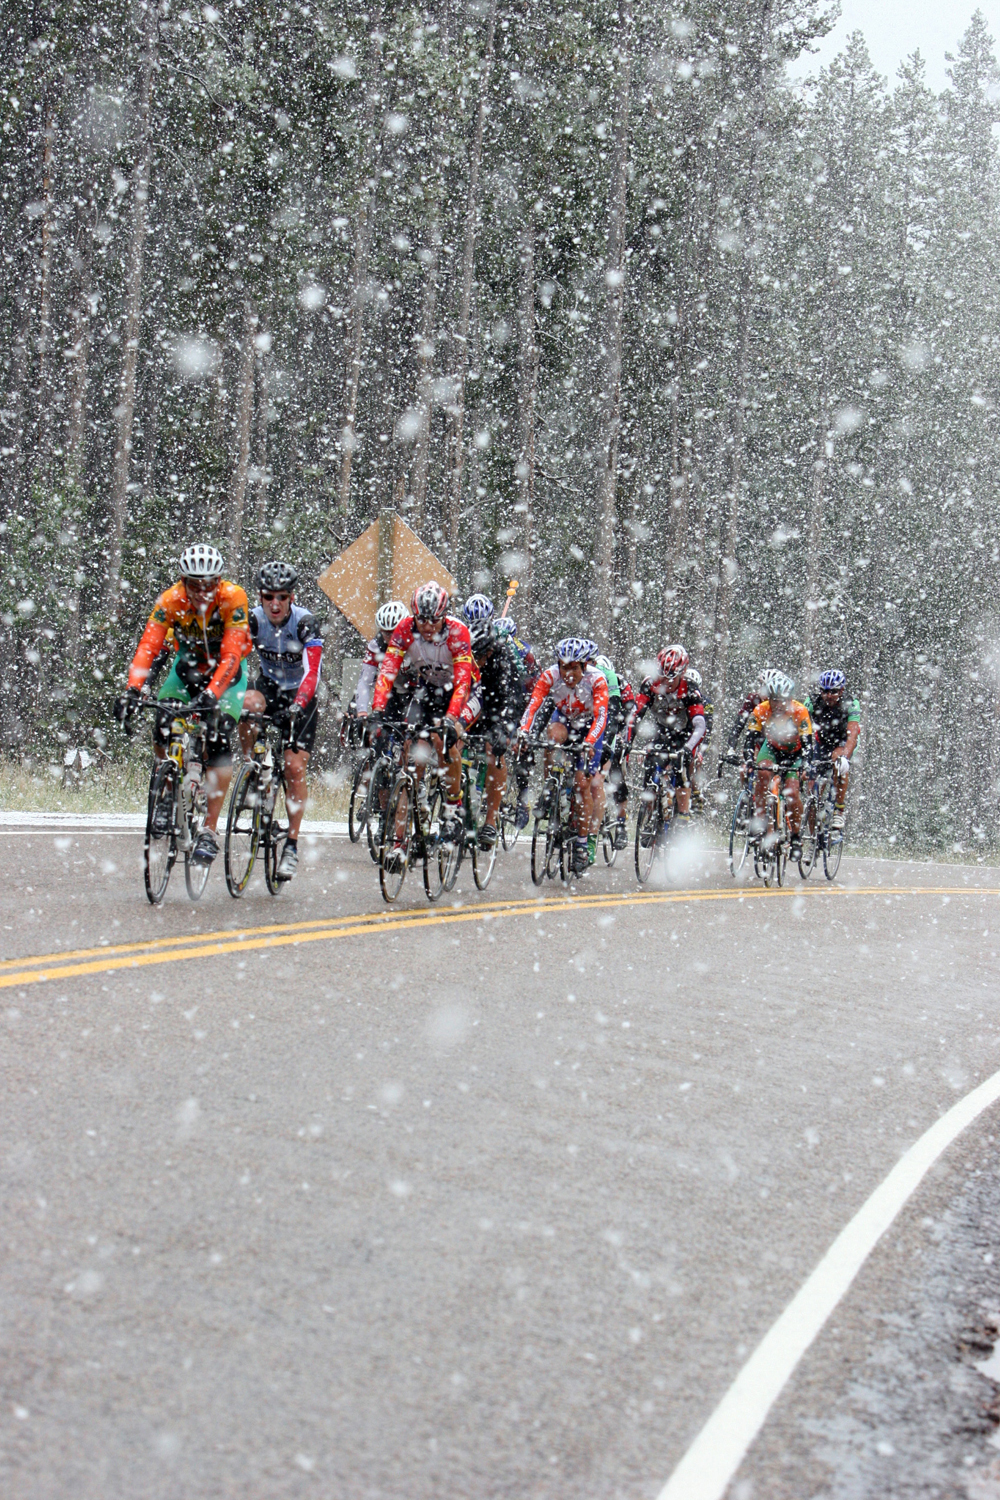 The 2005 LOTOJA was filled with snow, rain, and cold cyclists. Photo by Joaquim Hailer